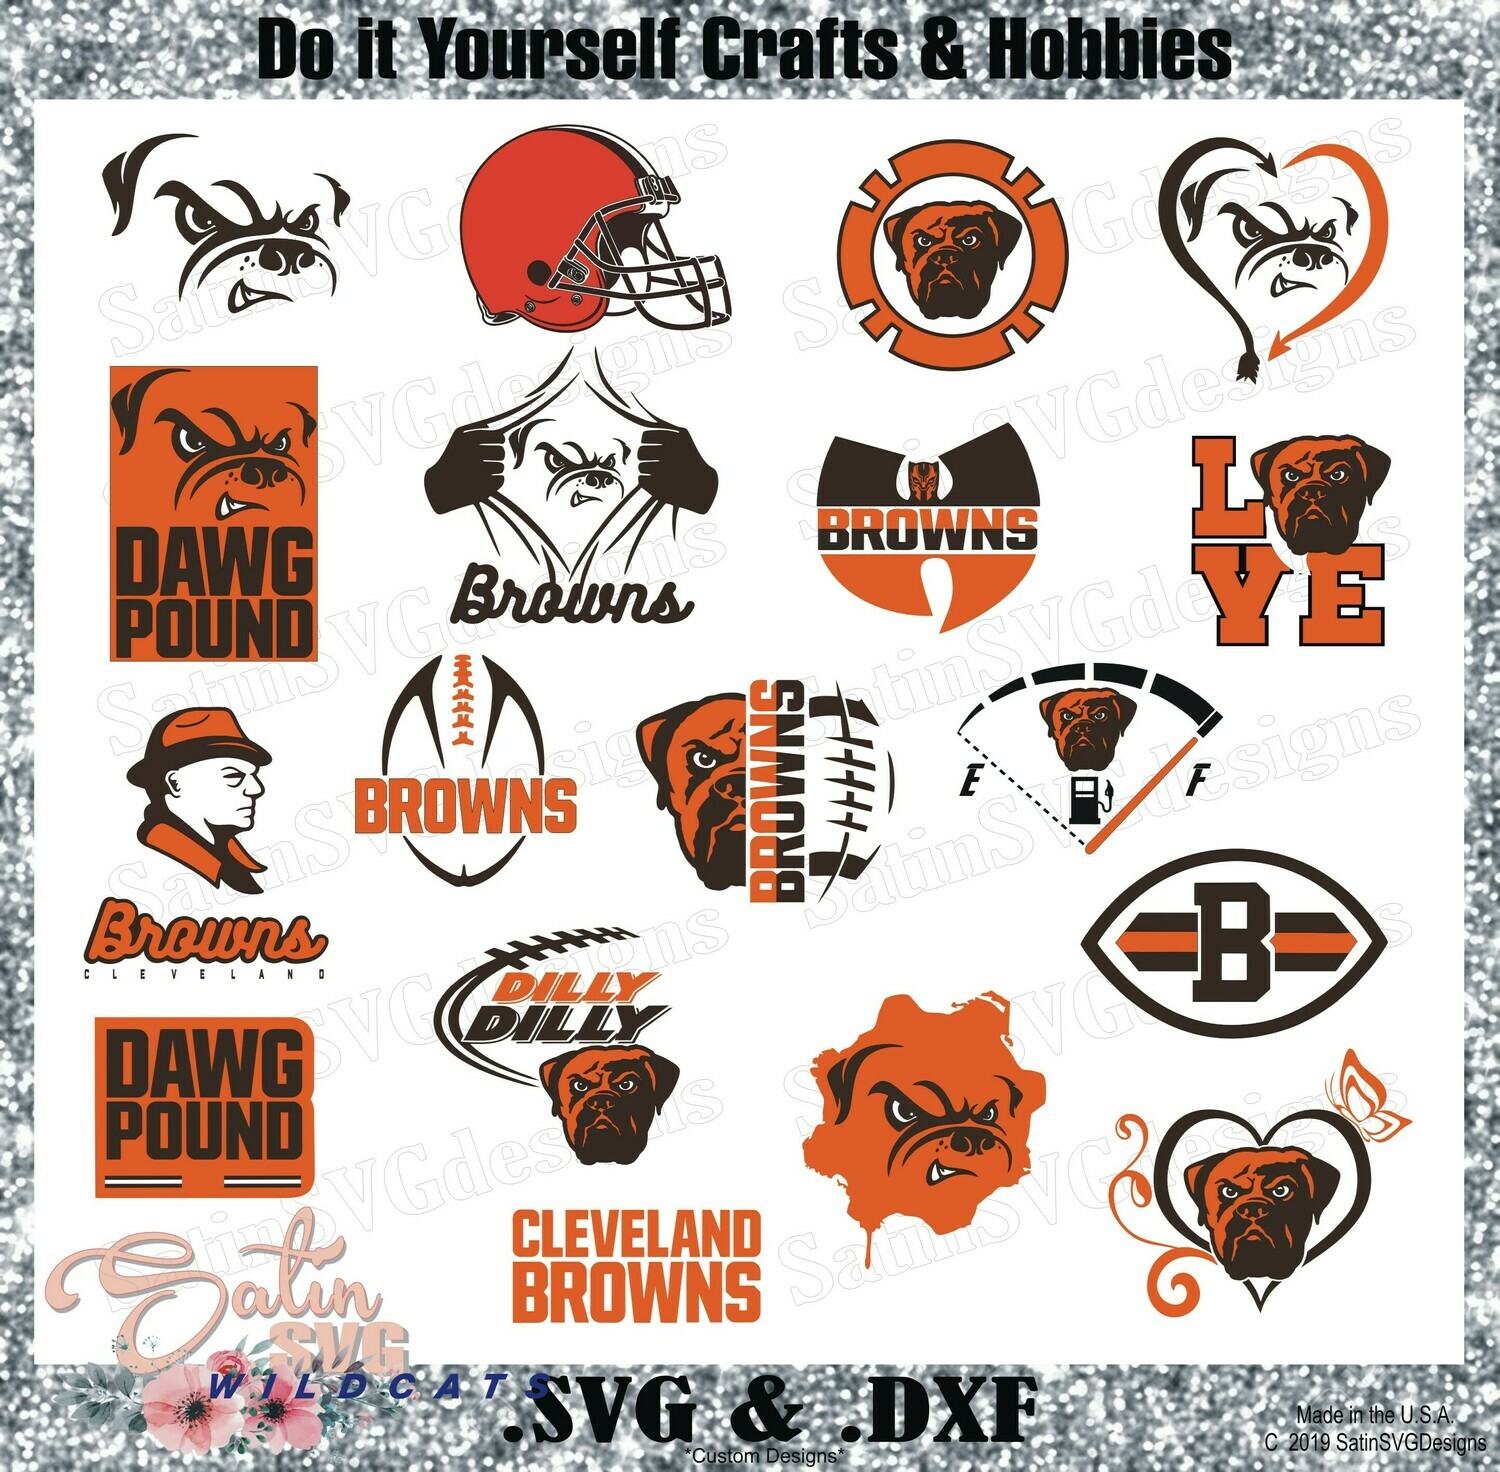 Cleveland Browns Dawg Pound Set2 Design SVG Files, Cricut, Silhouette Studio, Digital Cut Files